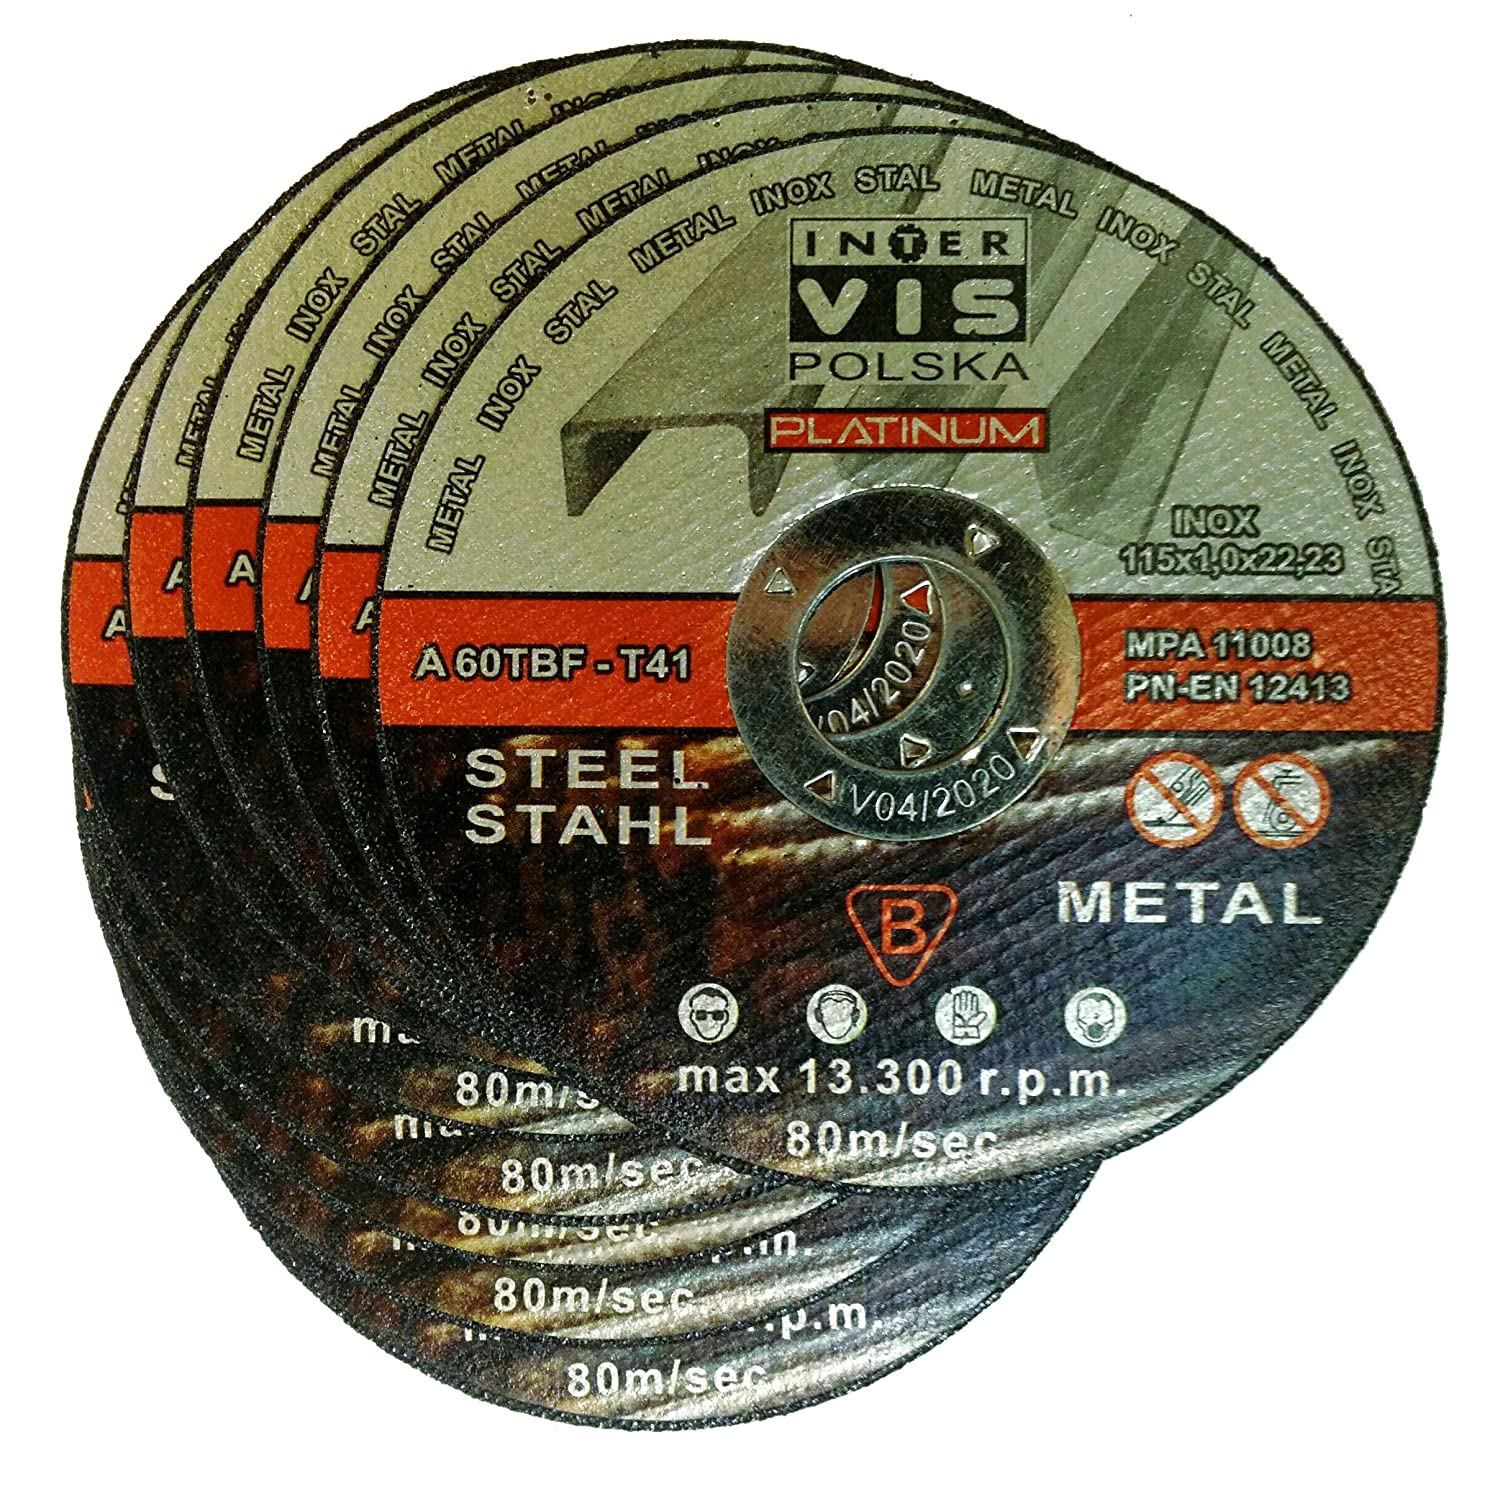 25  pieza Disco de corte para acero 115  x 1, 0  mm T41  Inter Vis Platinum 0 mm T41 Inter Vis Platinum